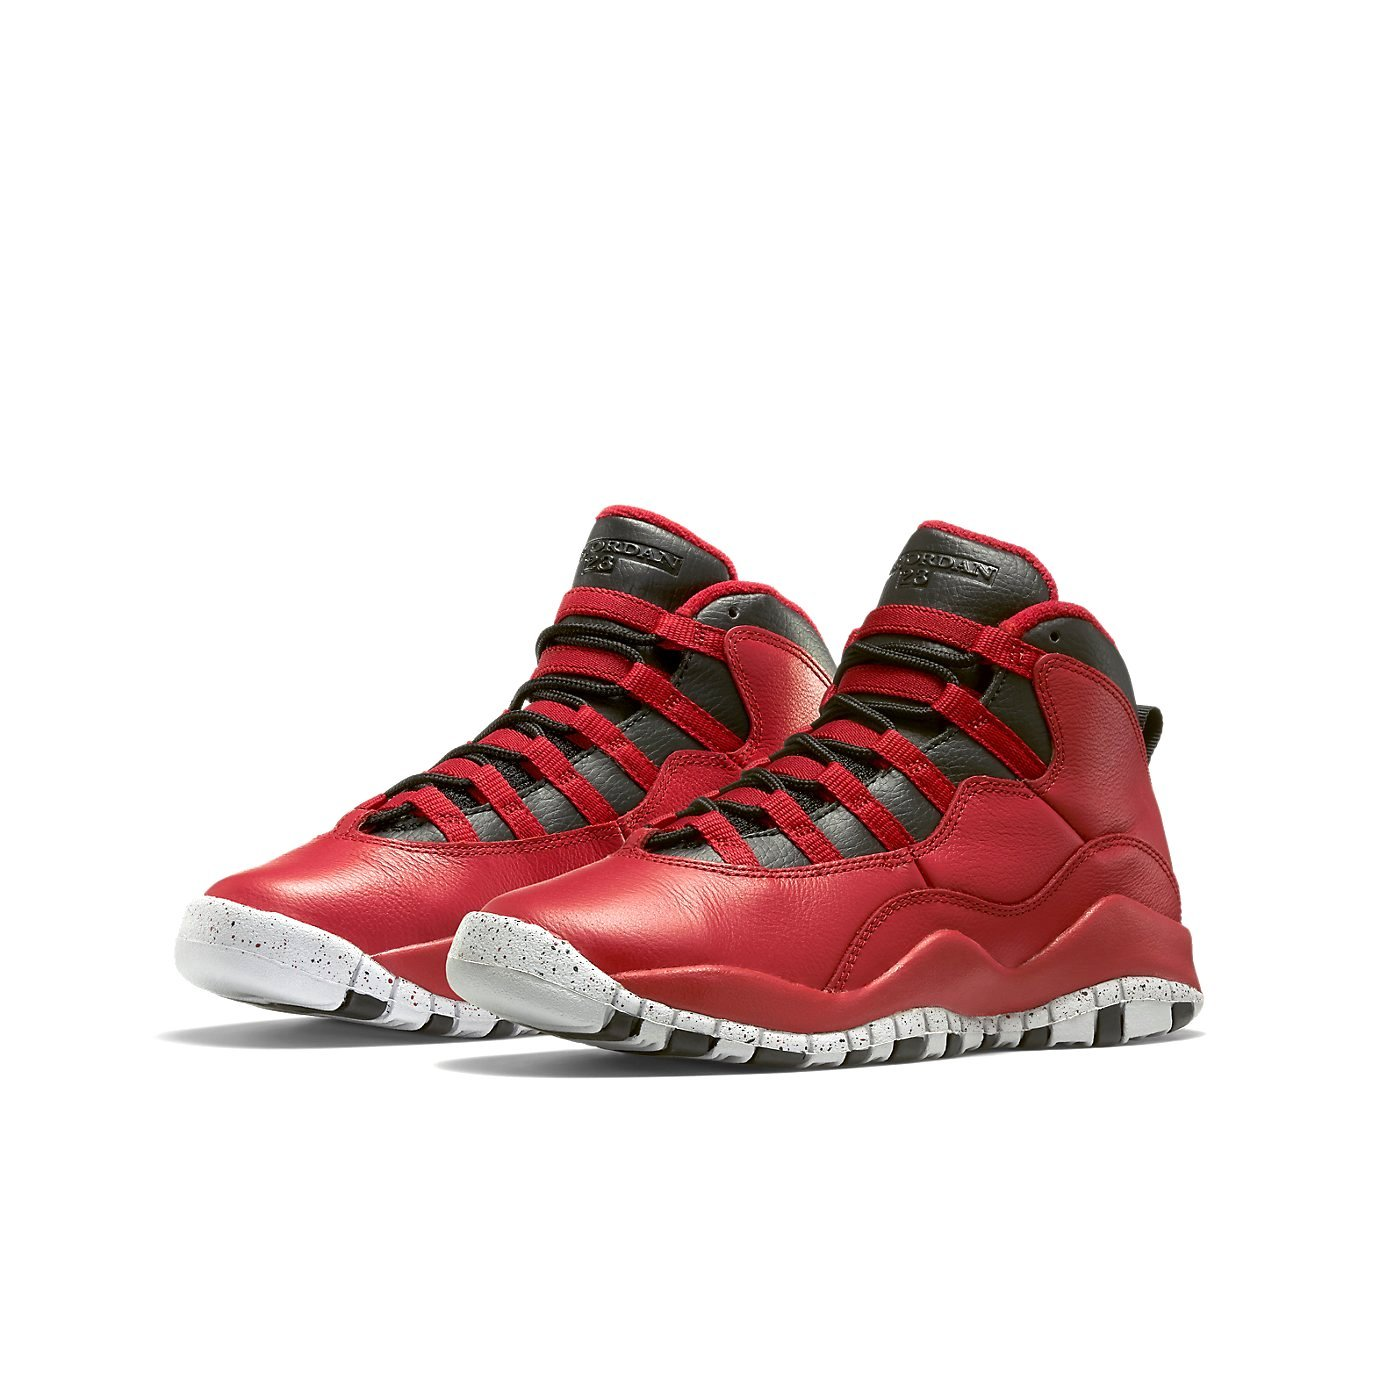 size 40 bc1fe 6d78f Amazon.com   Nike Boys Air Jordan 10 Retro 30th BG Bulls Over Broadway Gym  Red-Black-Wolf Grey Leather Basketball Shoes   Basketball